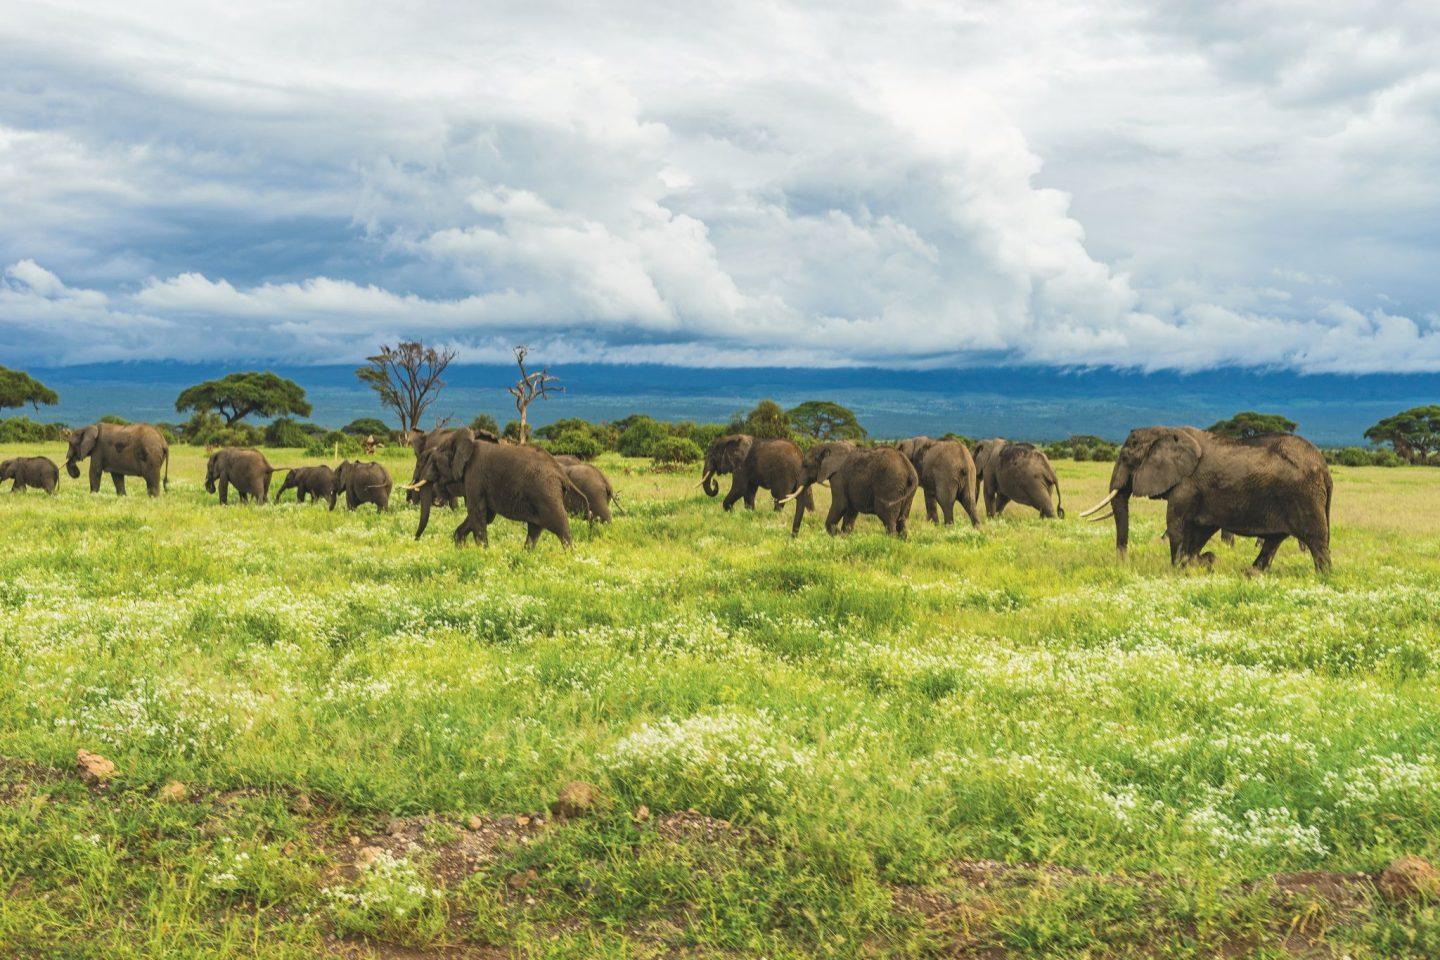 Travel wish list: Tanzania, Africa